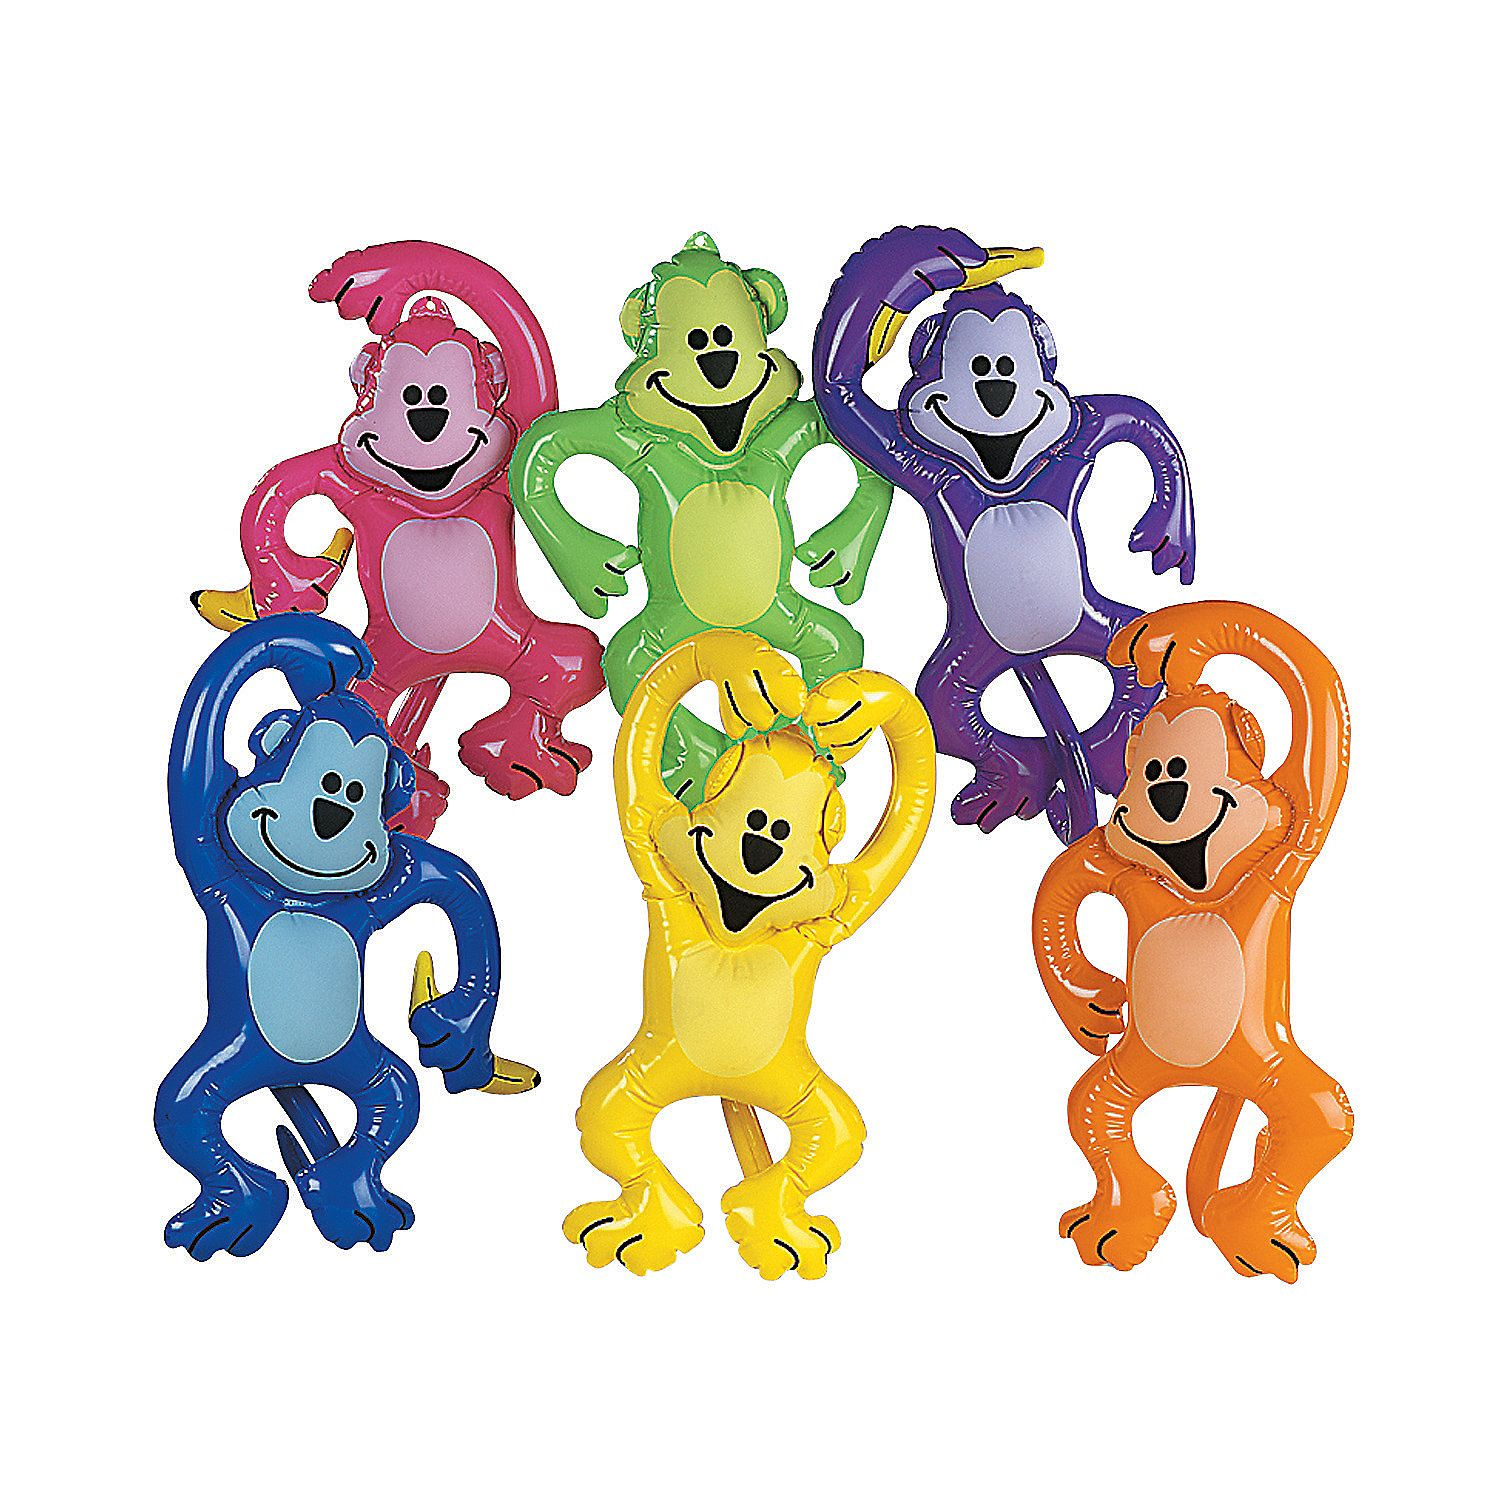 Inflatable Neon Monkeys Orientaltrading Com 20 21 Per Dozen Purple Monkey Party Toys Toy Monkey Monkey Birthday